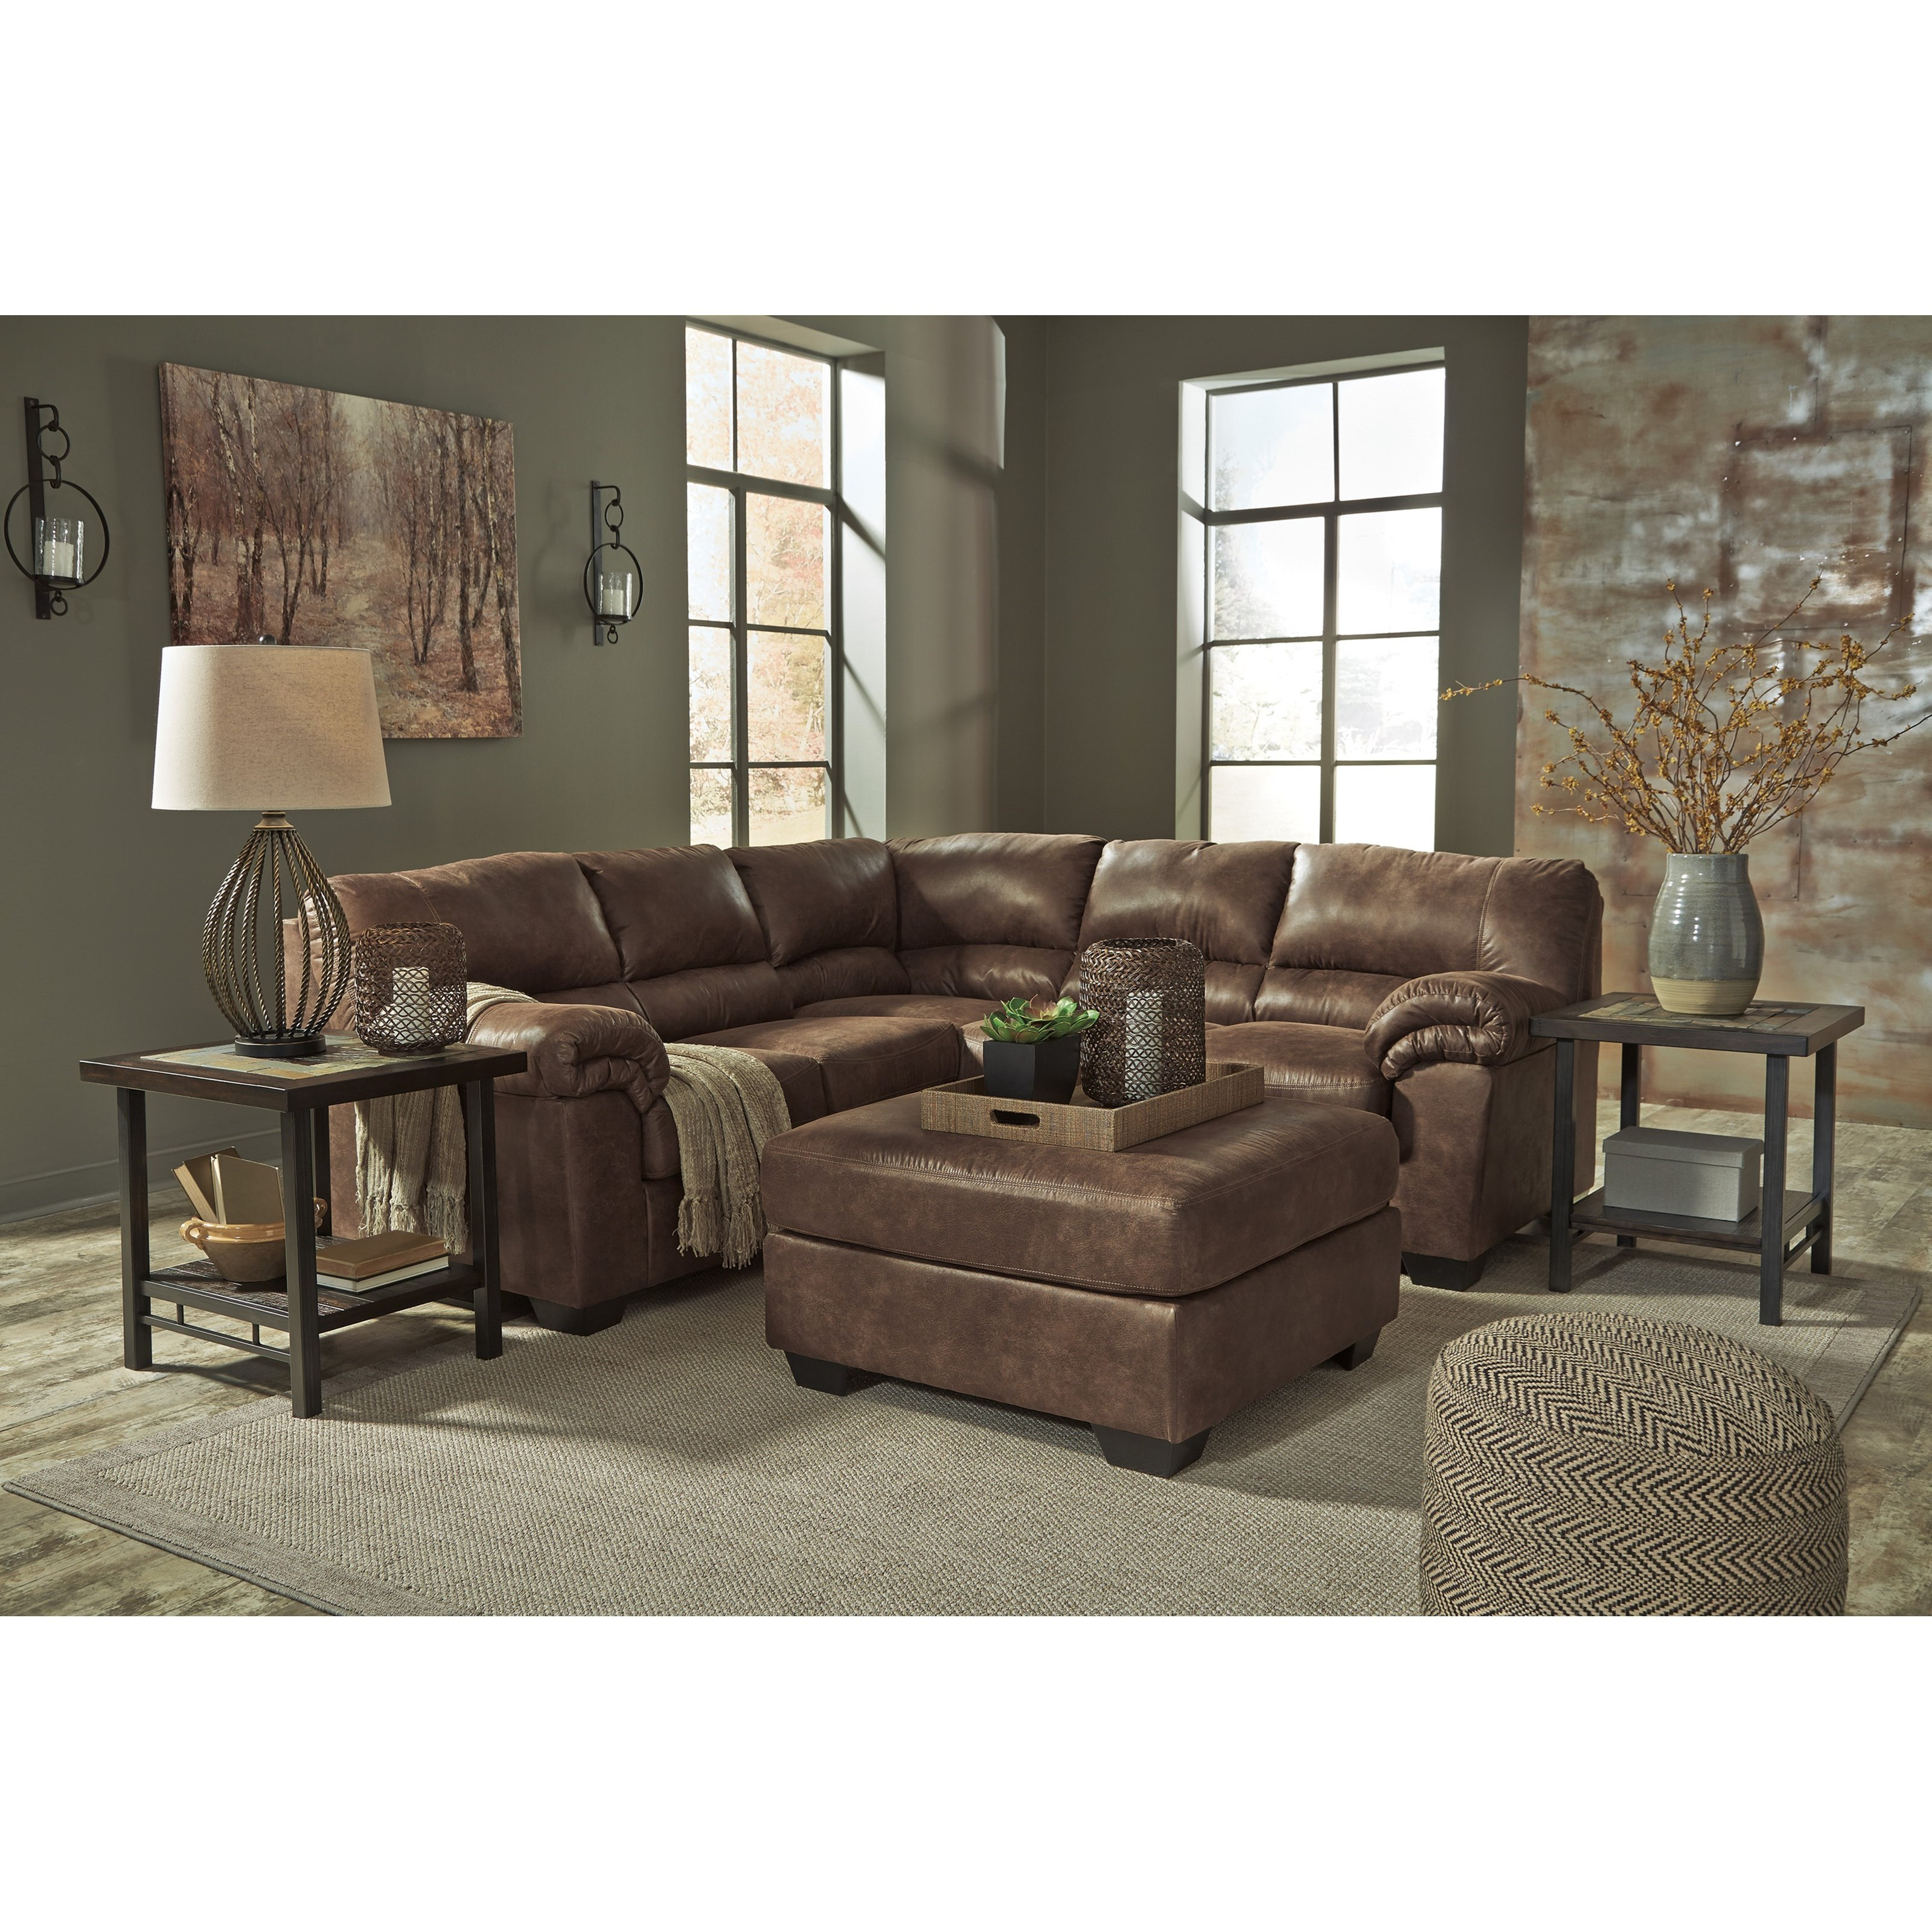 Signature Design By Ashley Bladen 1200008 Faux Leather